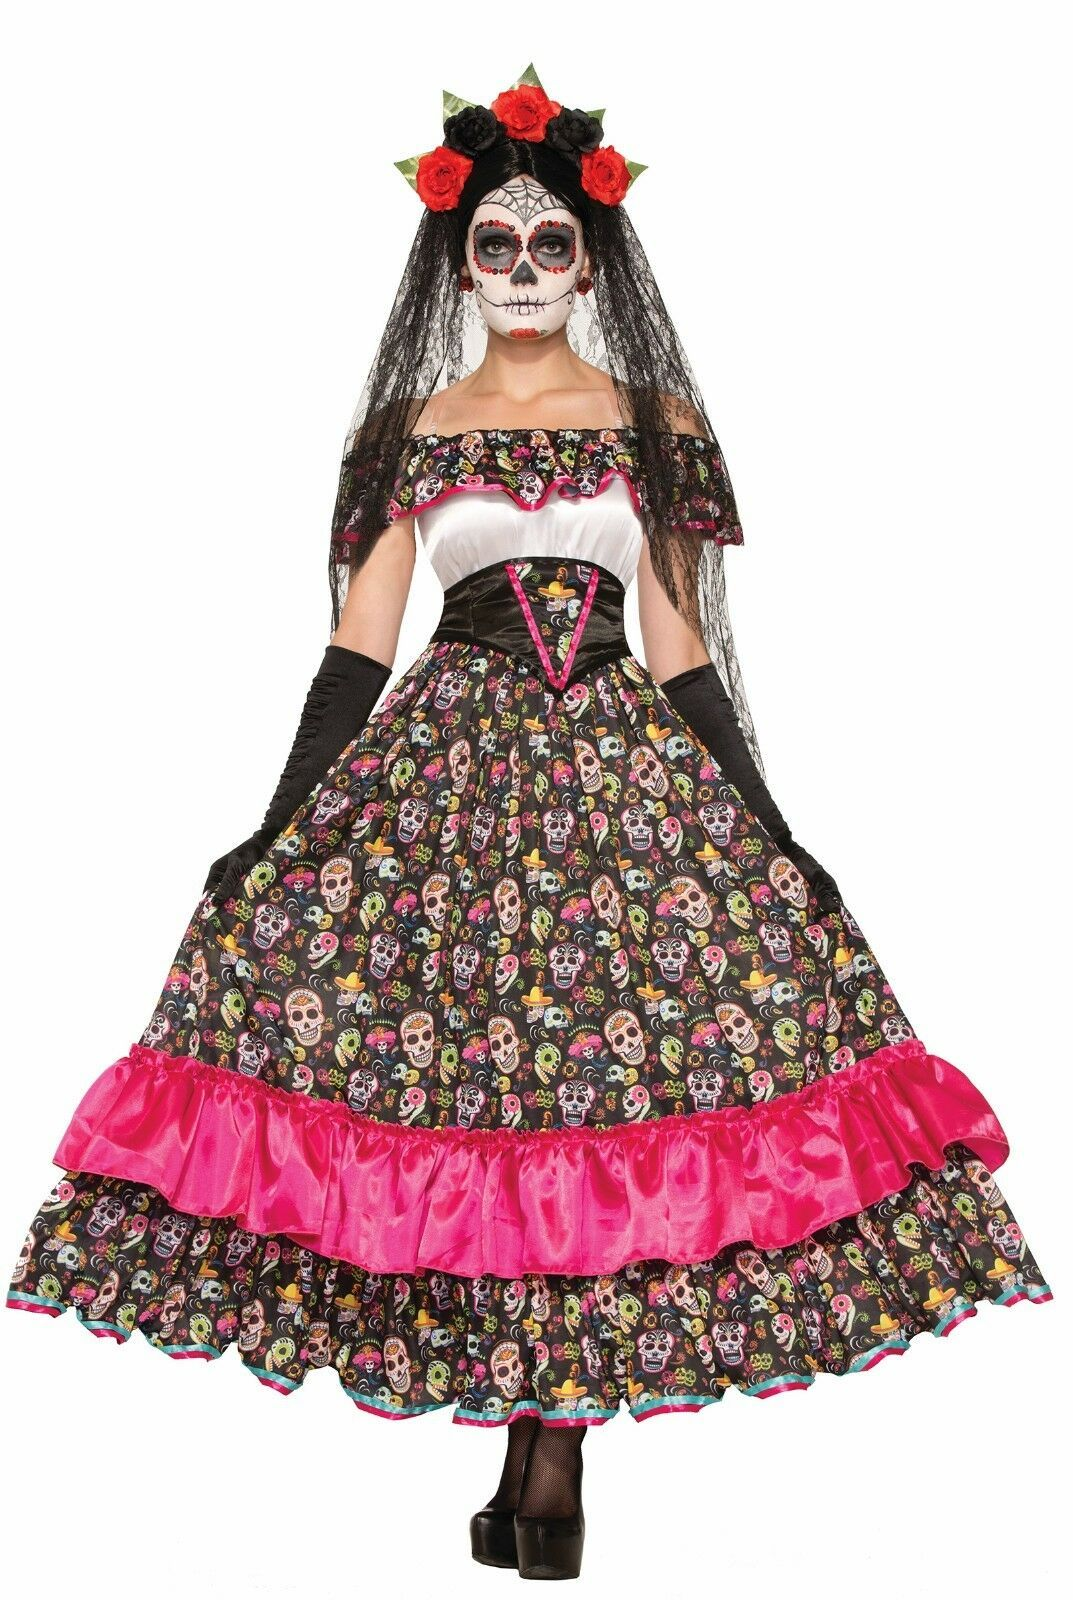 Primary image for Day of the Dead Sugar Skull Catrina Dia de Los Muertos Halloween Costume 74798